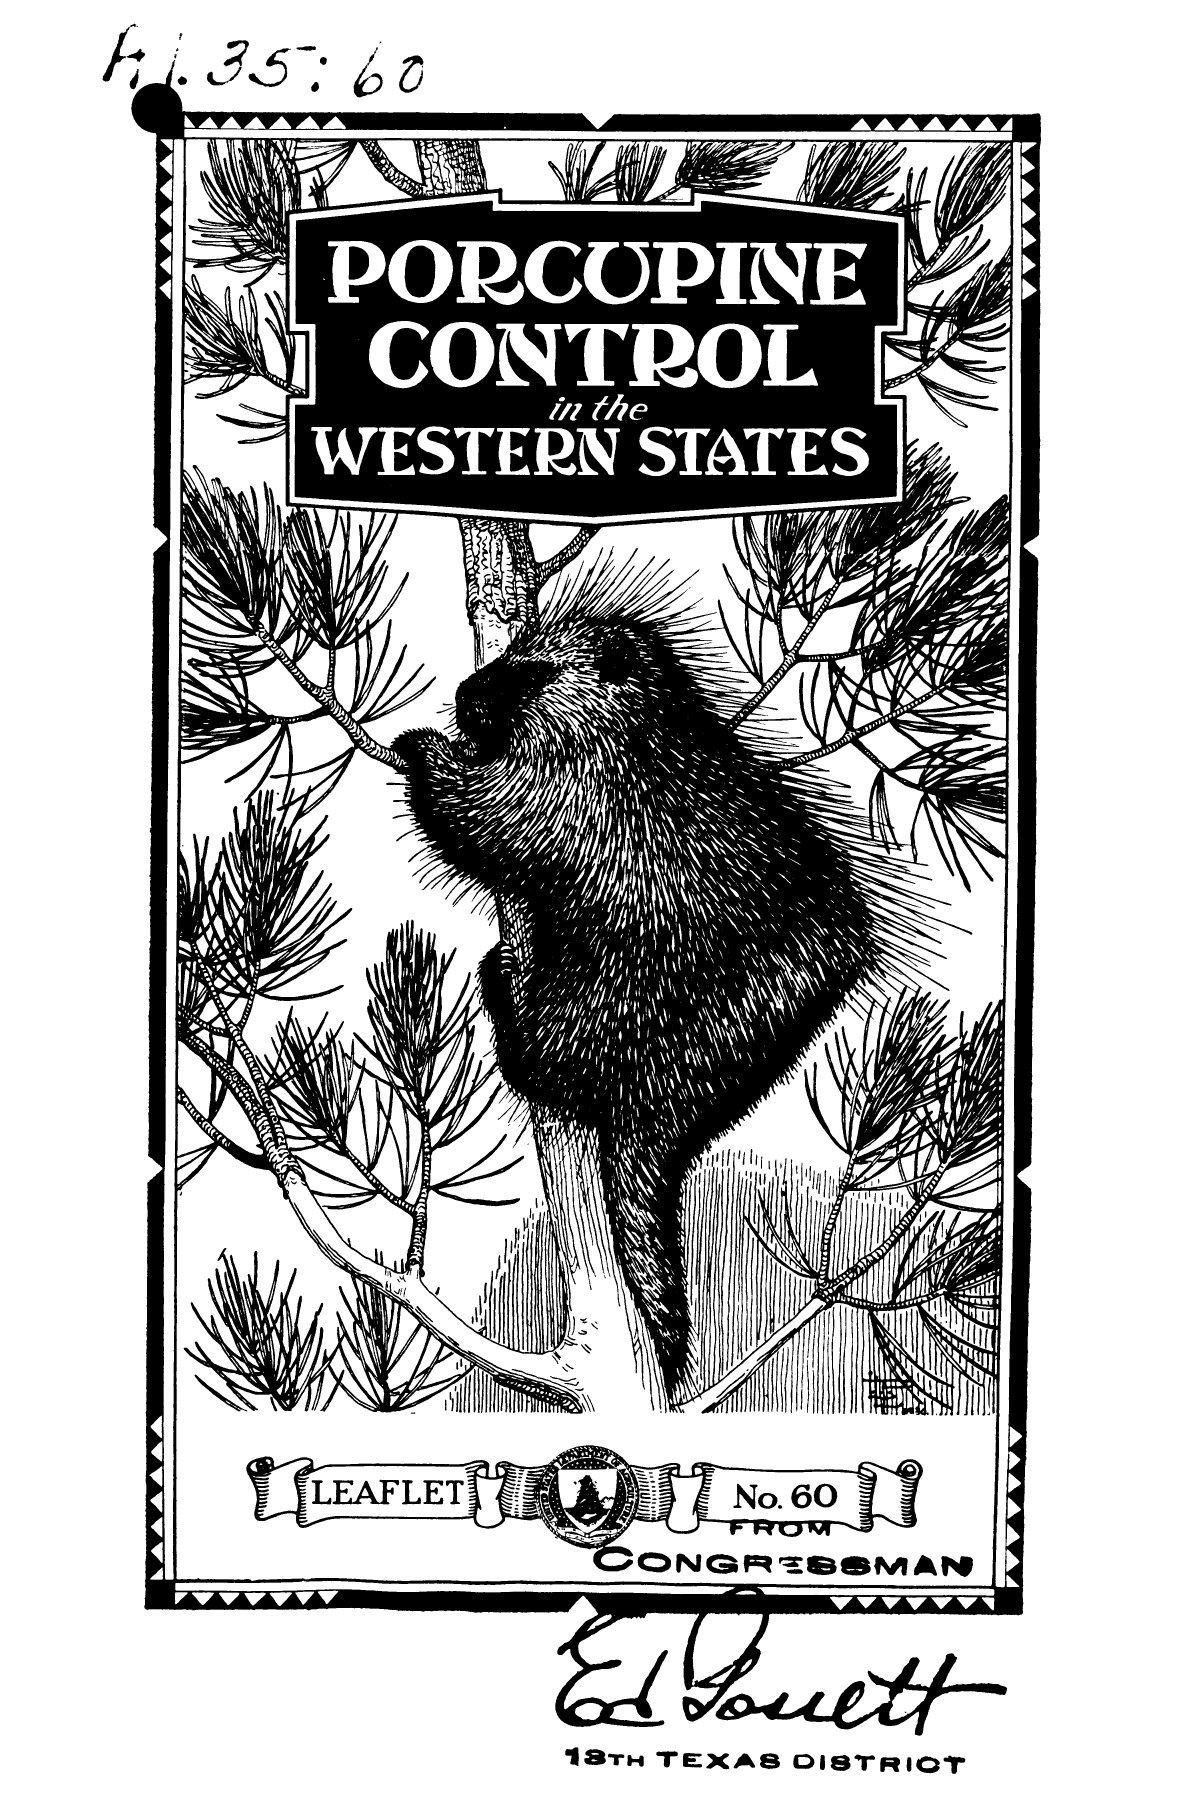 Porcupine control in the western states.                                                                                                      1